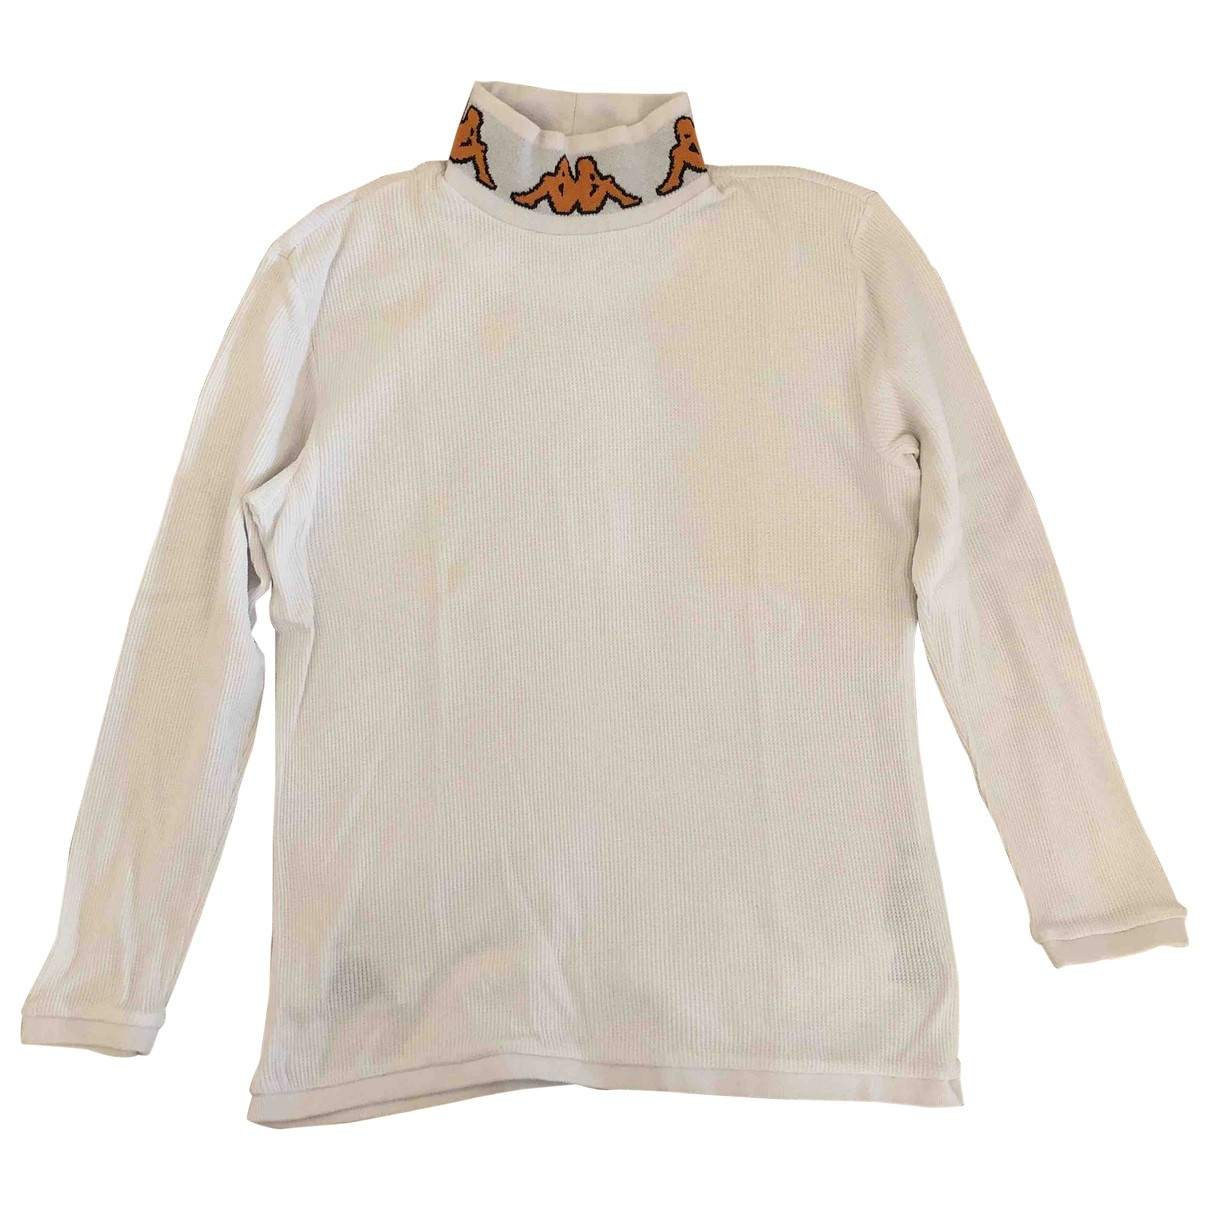 Kappa Kontroll \N White Cotton Knitwear & Sweatshirts for Men M International